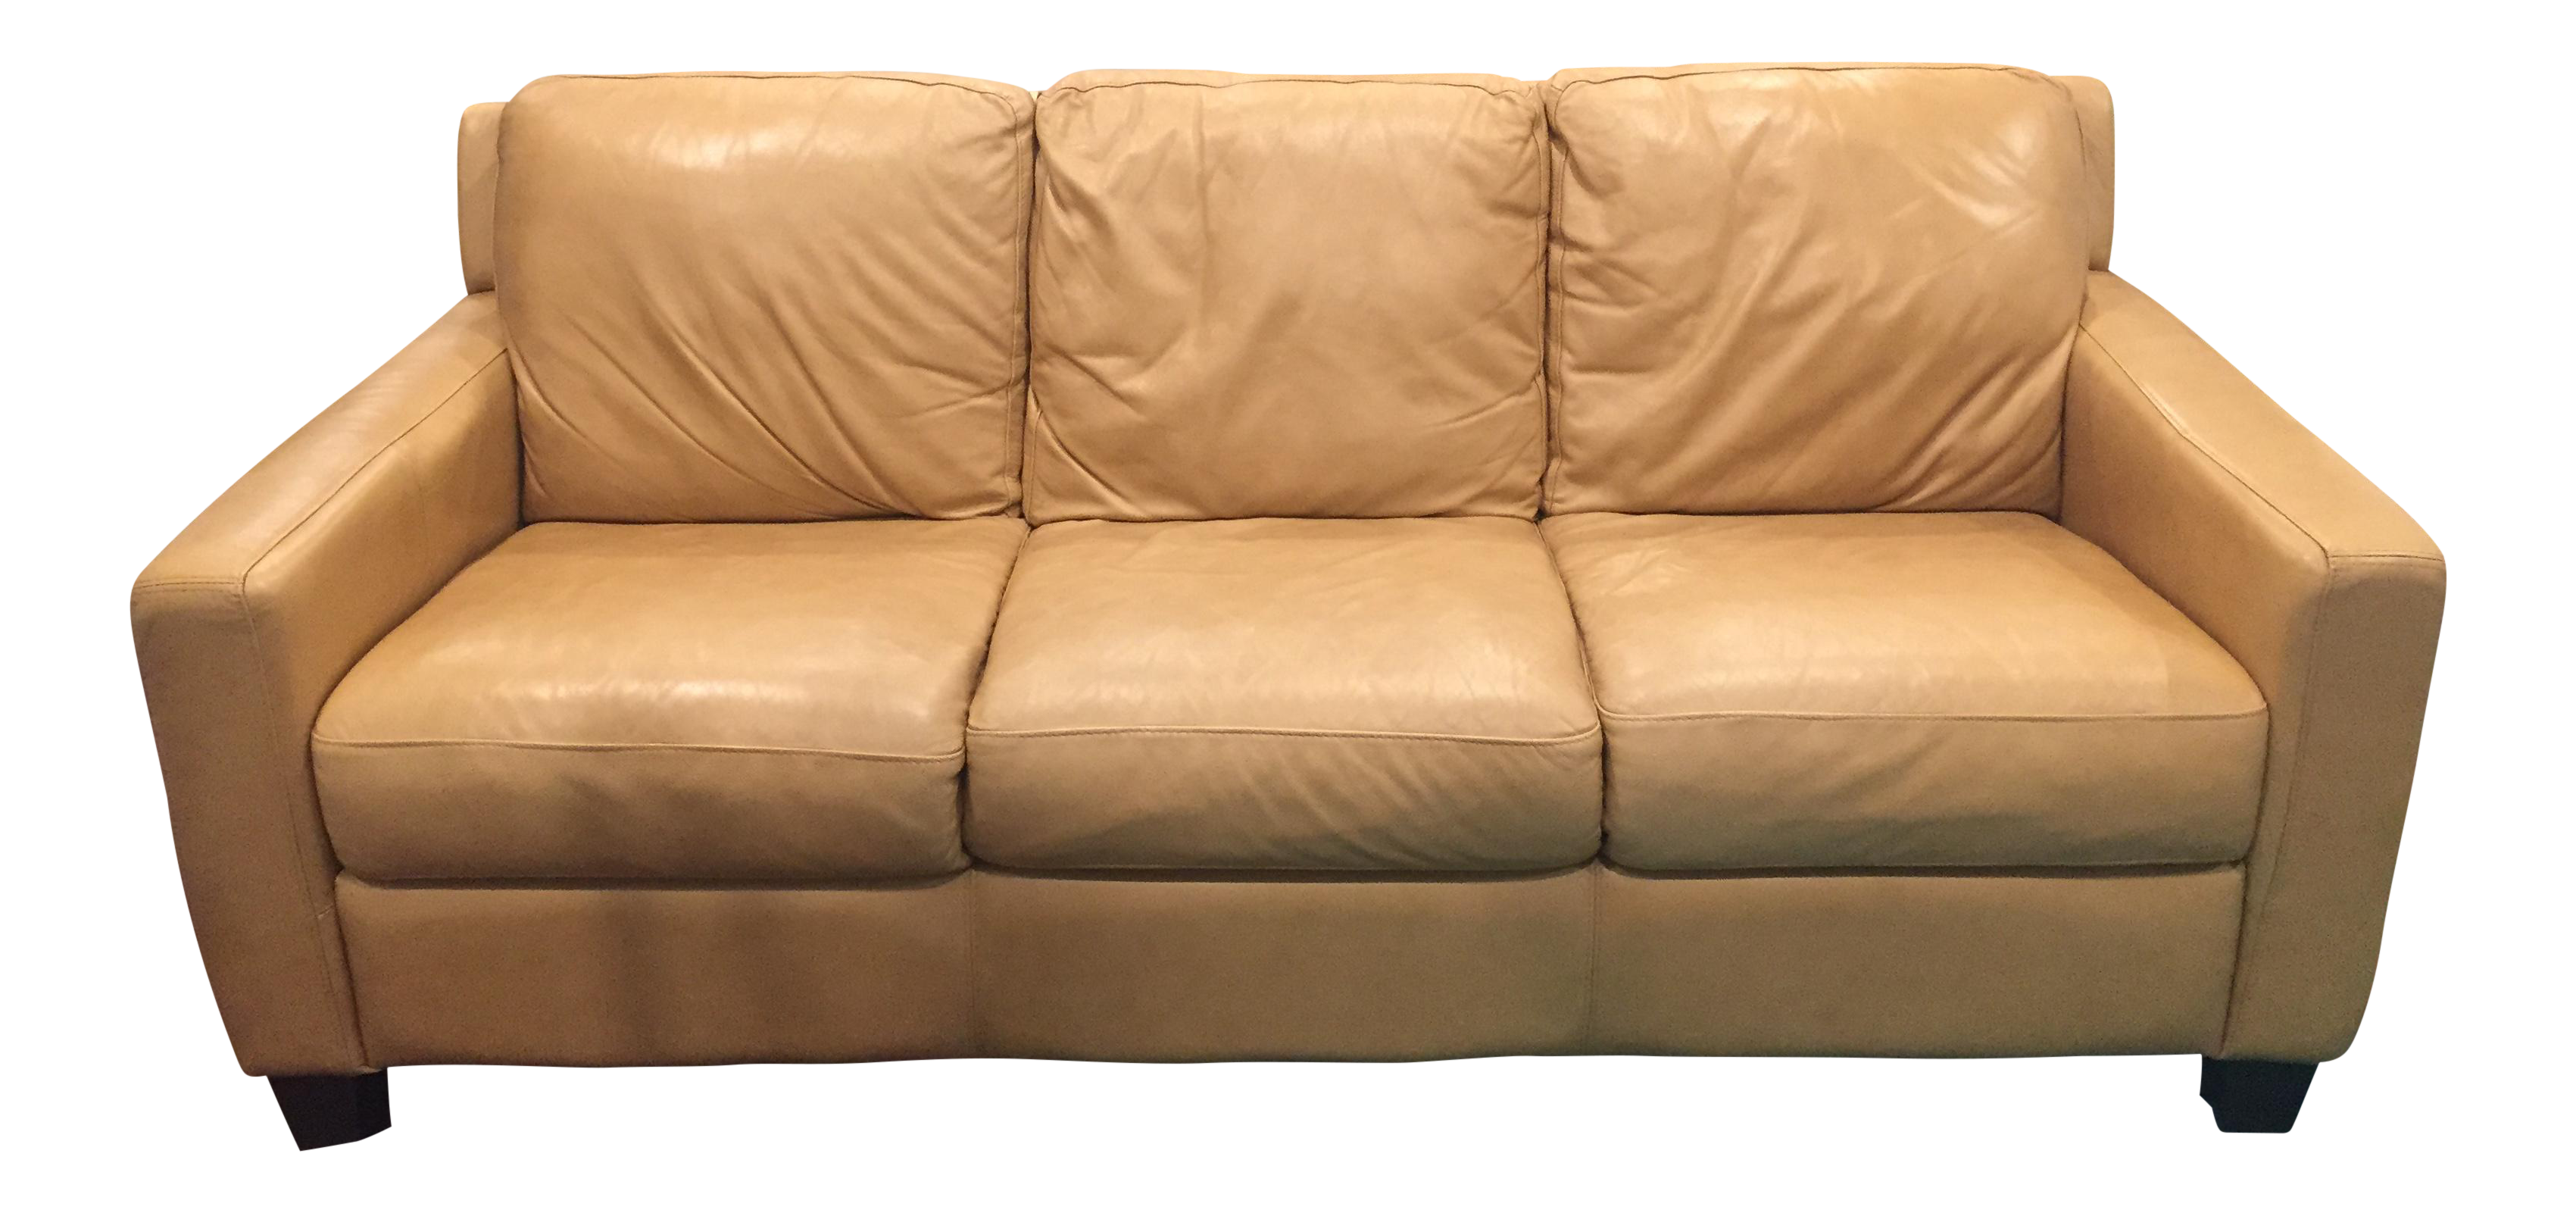 Stupendous Divani Chateau Dax Tan Italian Leather Sofa Caraccident5 Cool Chair Designs And Ideas Caraccident5Info